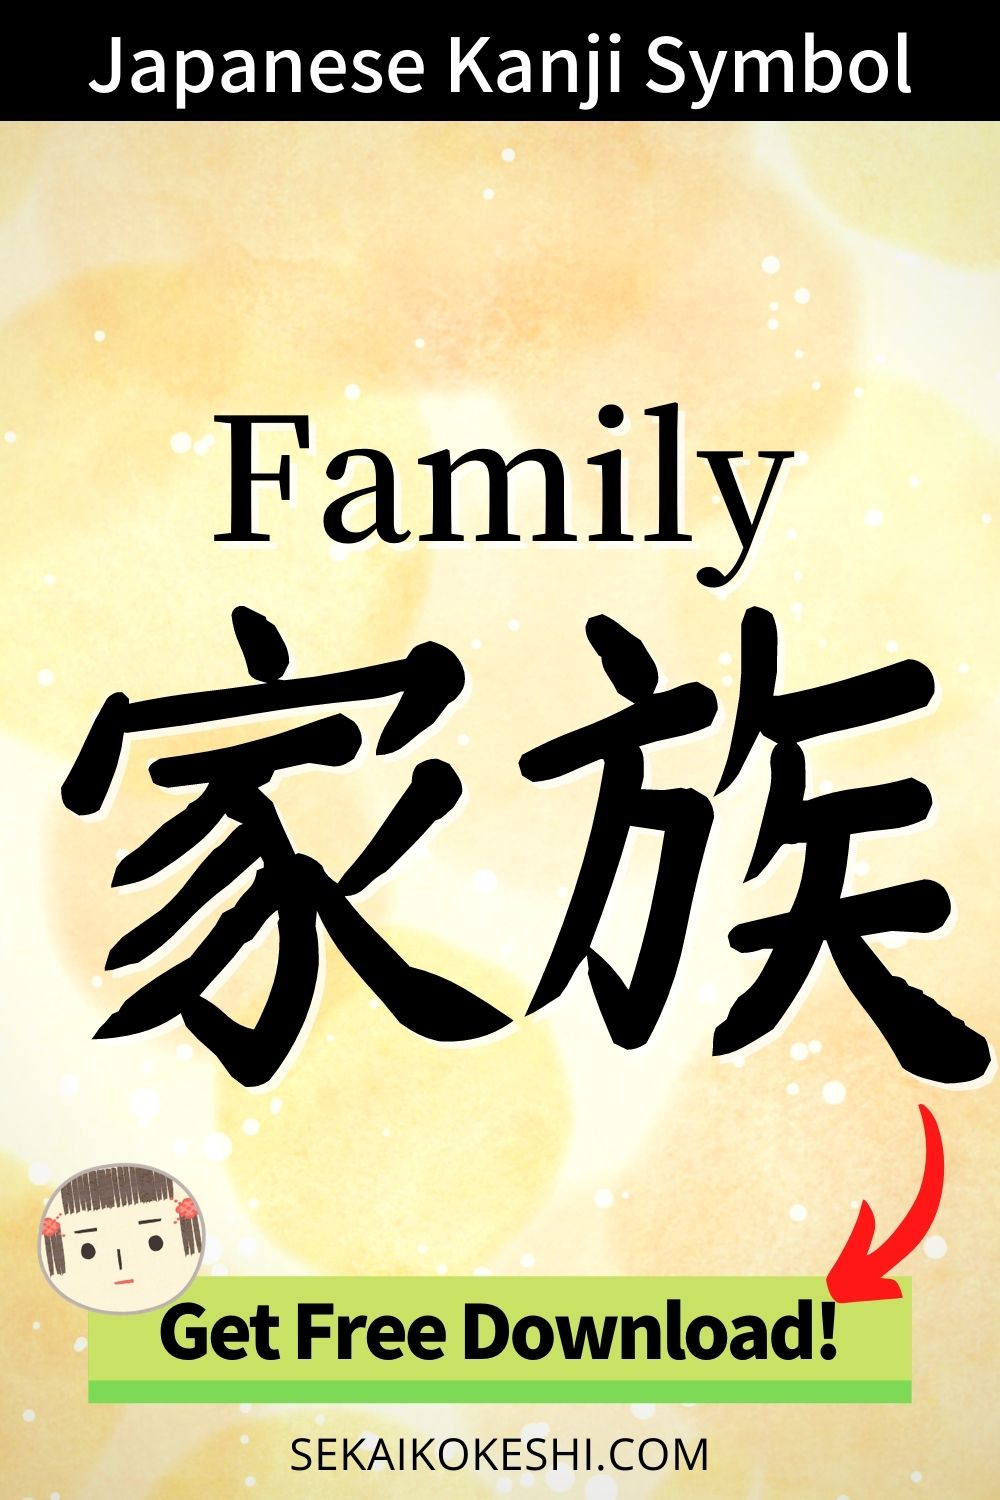 japanese kanji symbol, family, get free download!